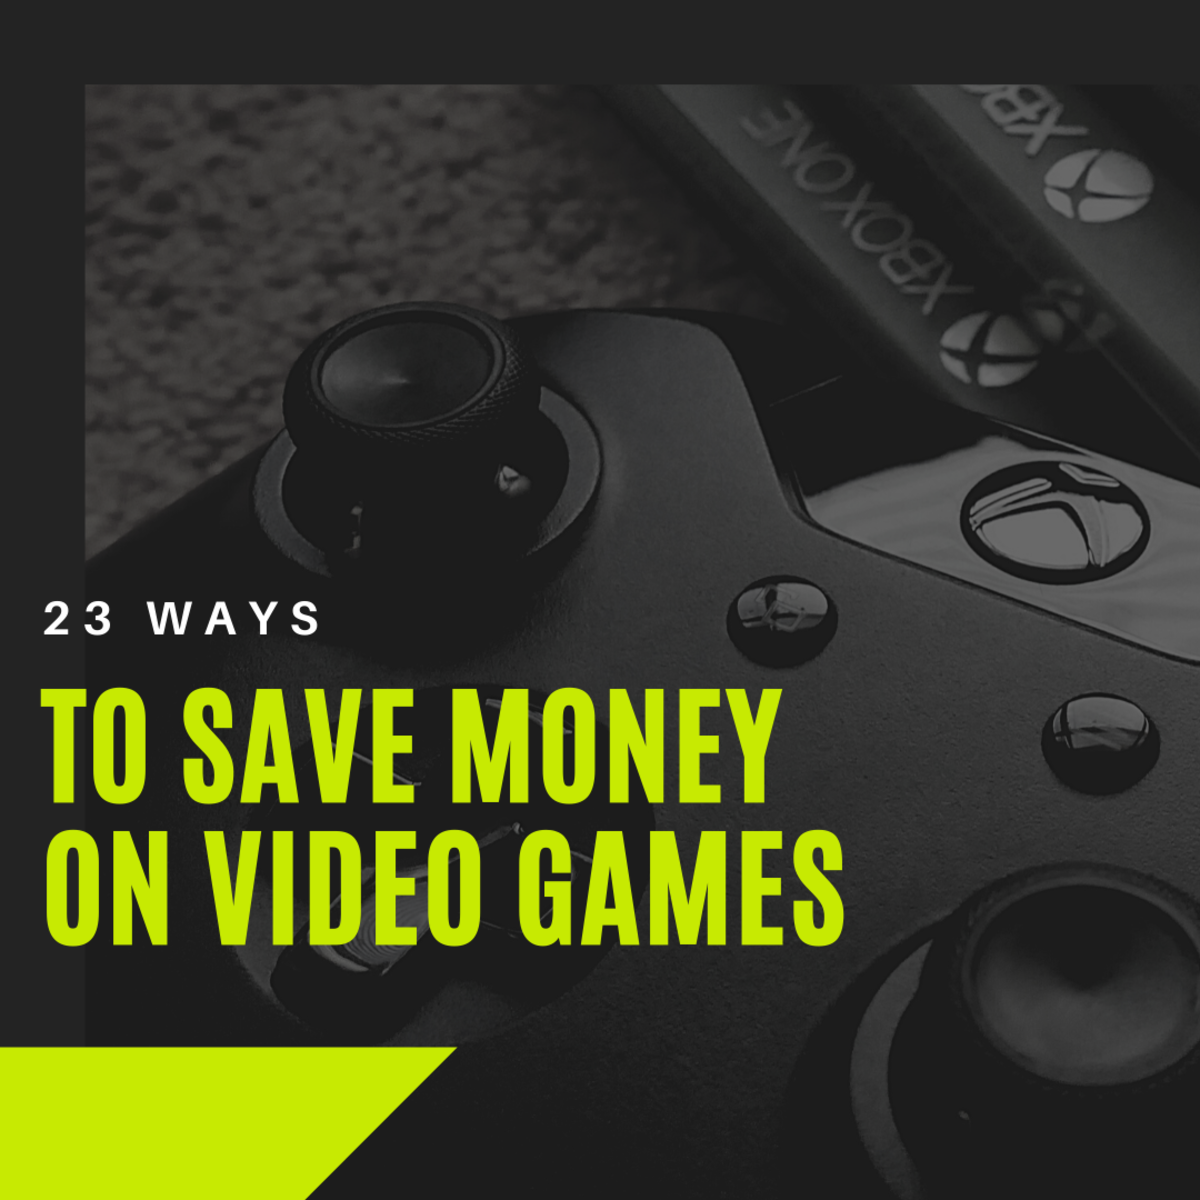 23 Ways You Can Save Money on Video Games